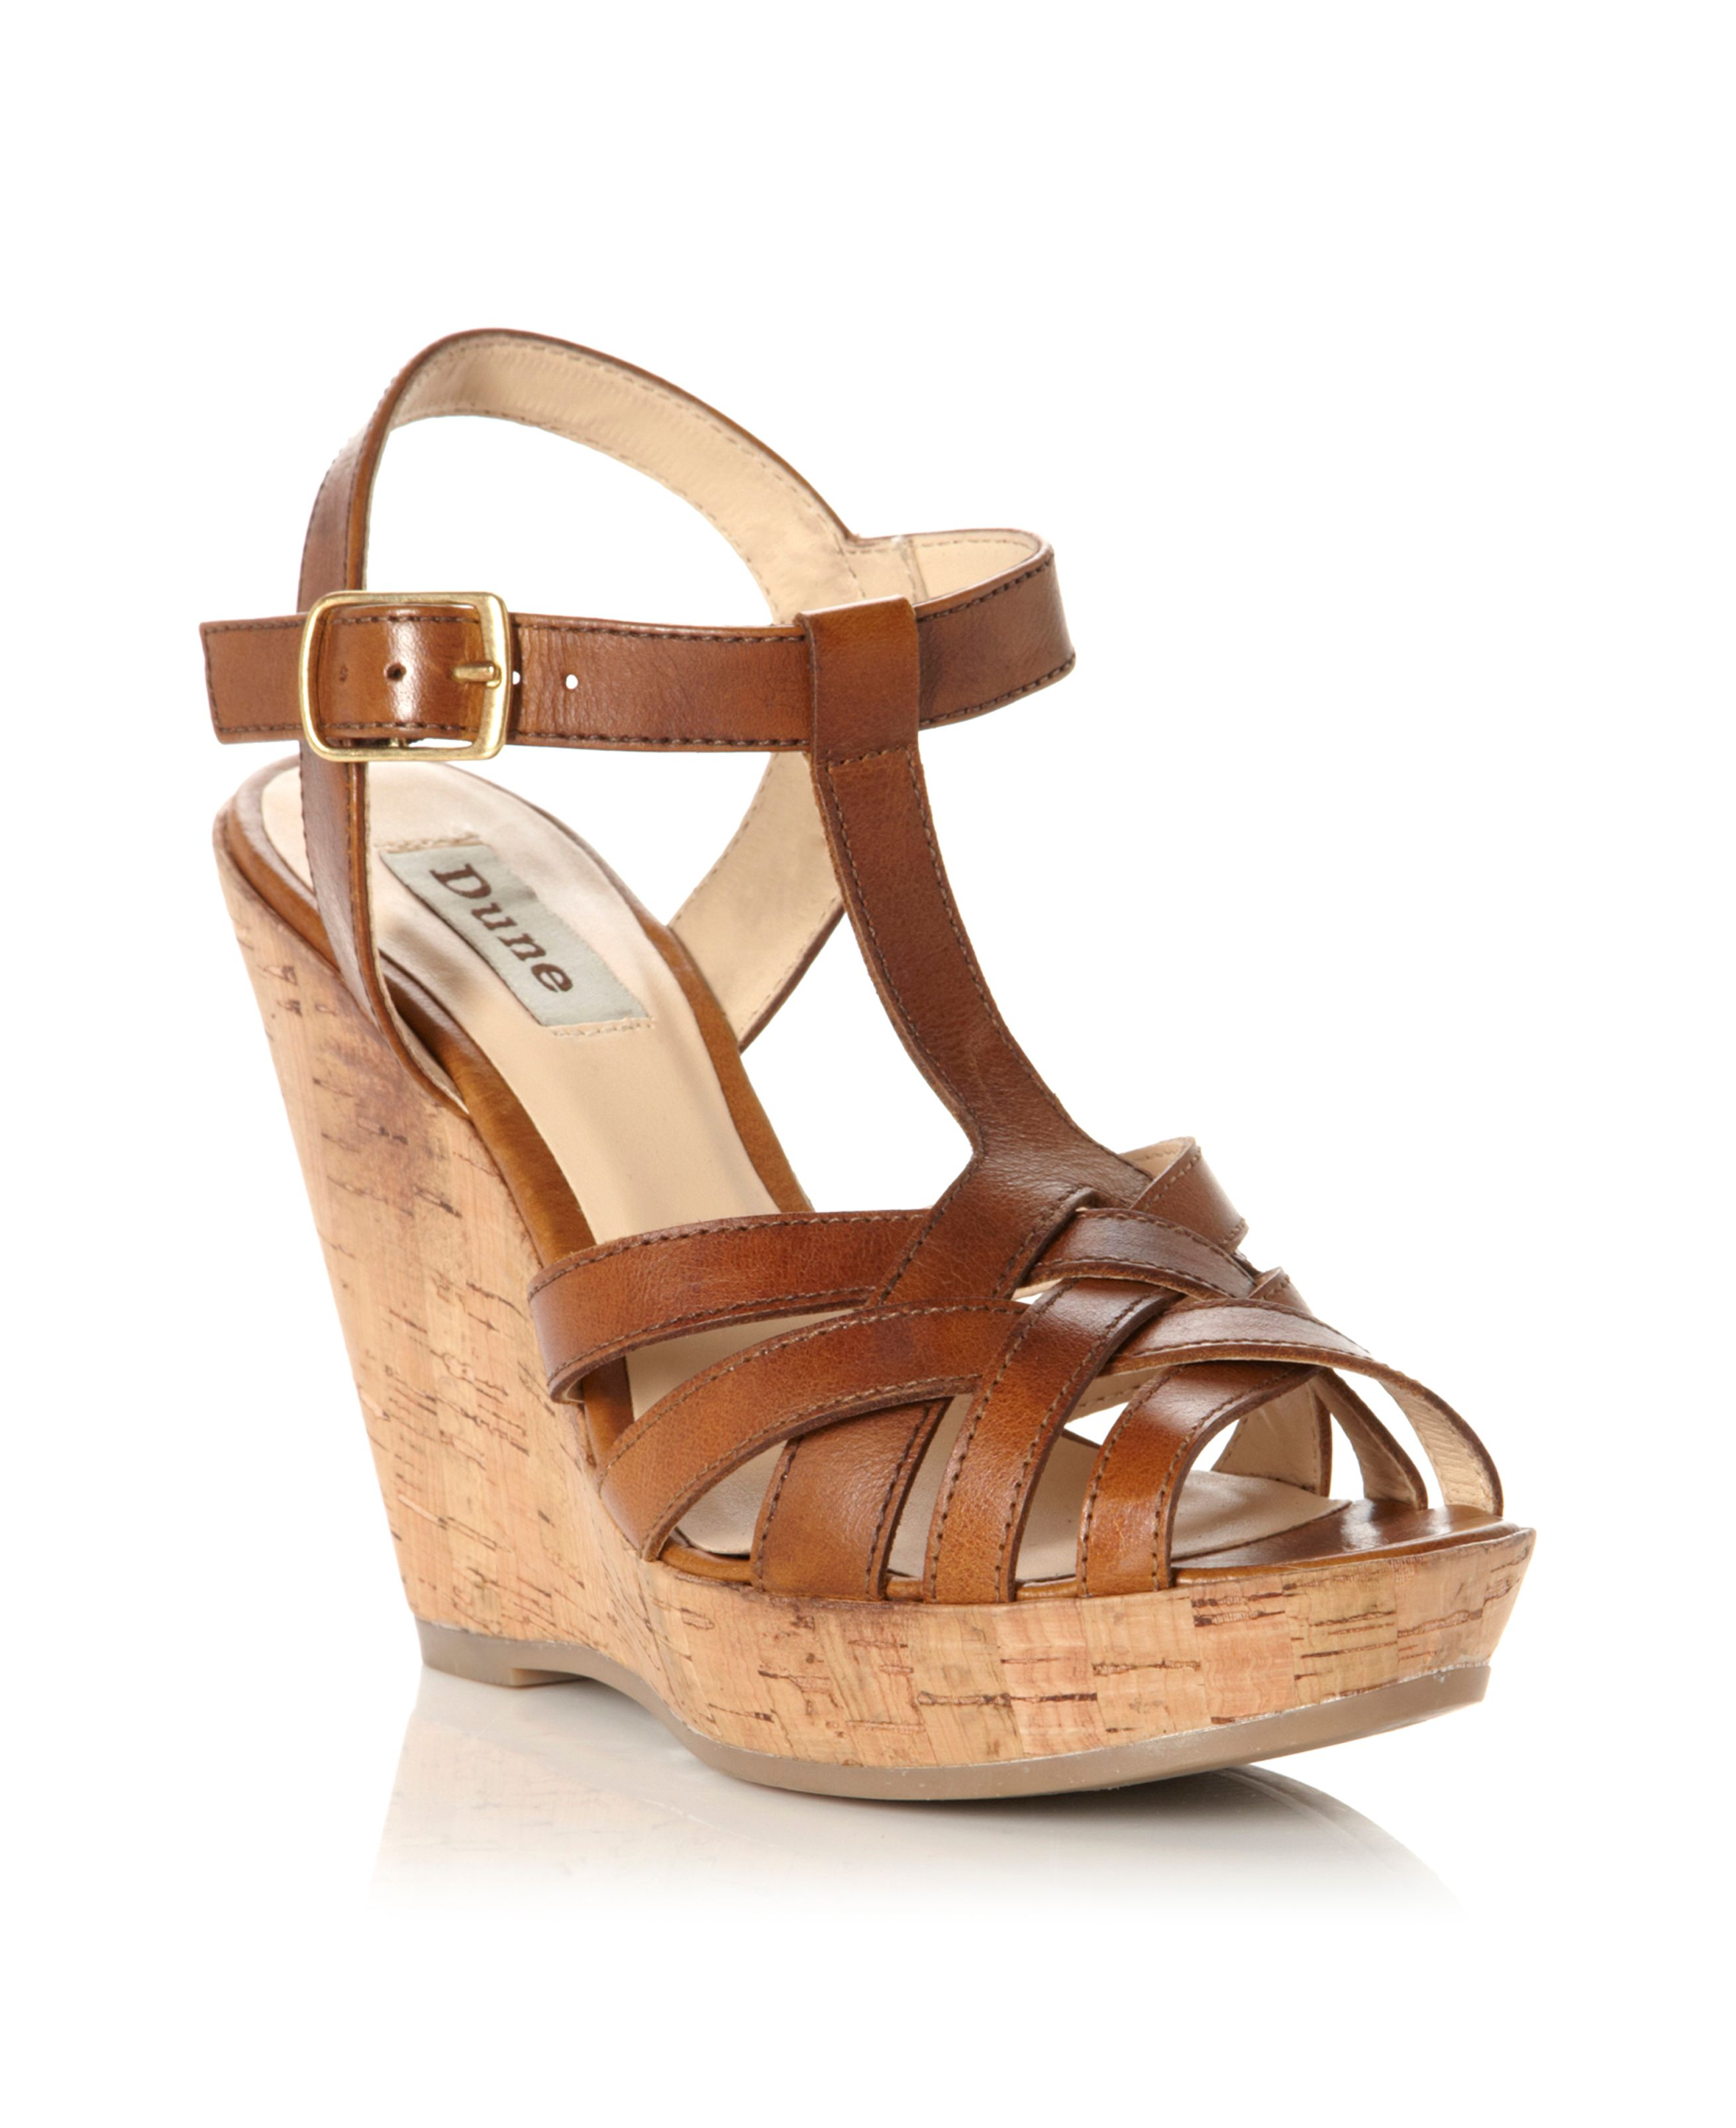 Gerri t bar wedge shoes